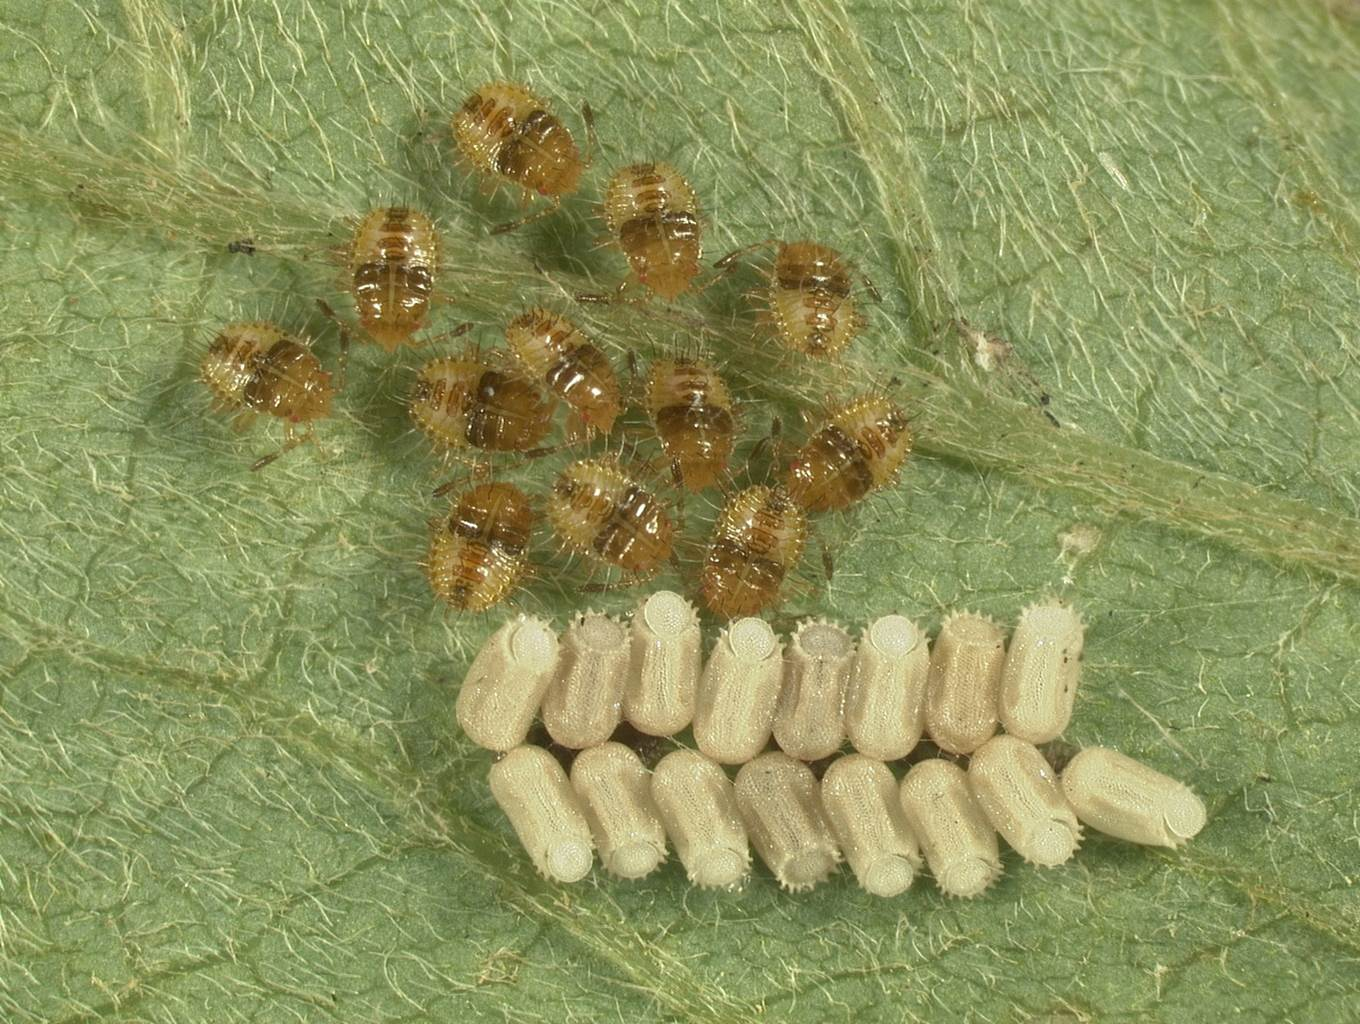 Kudzu bug nymphs-first instar